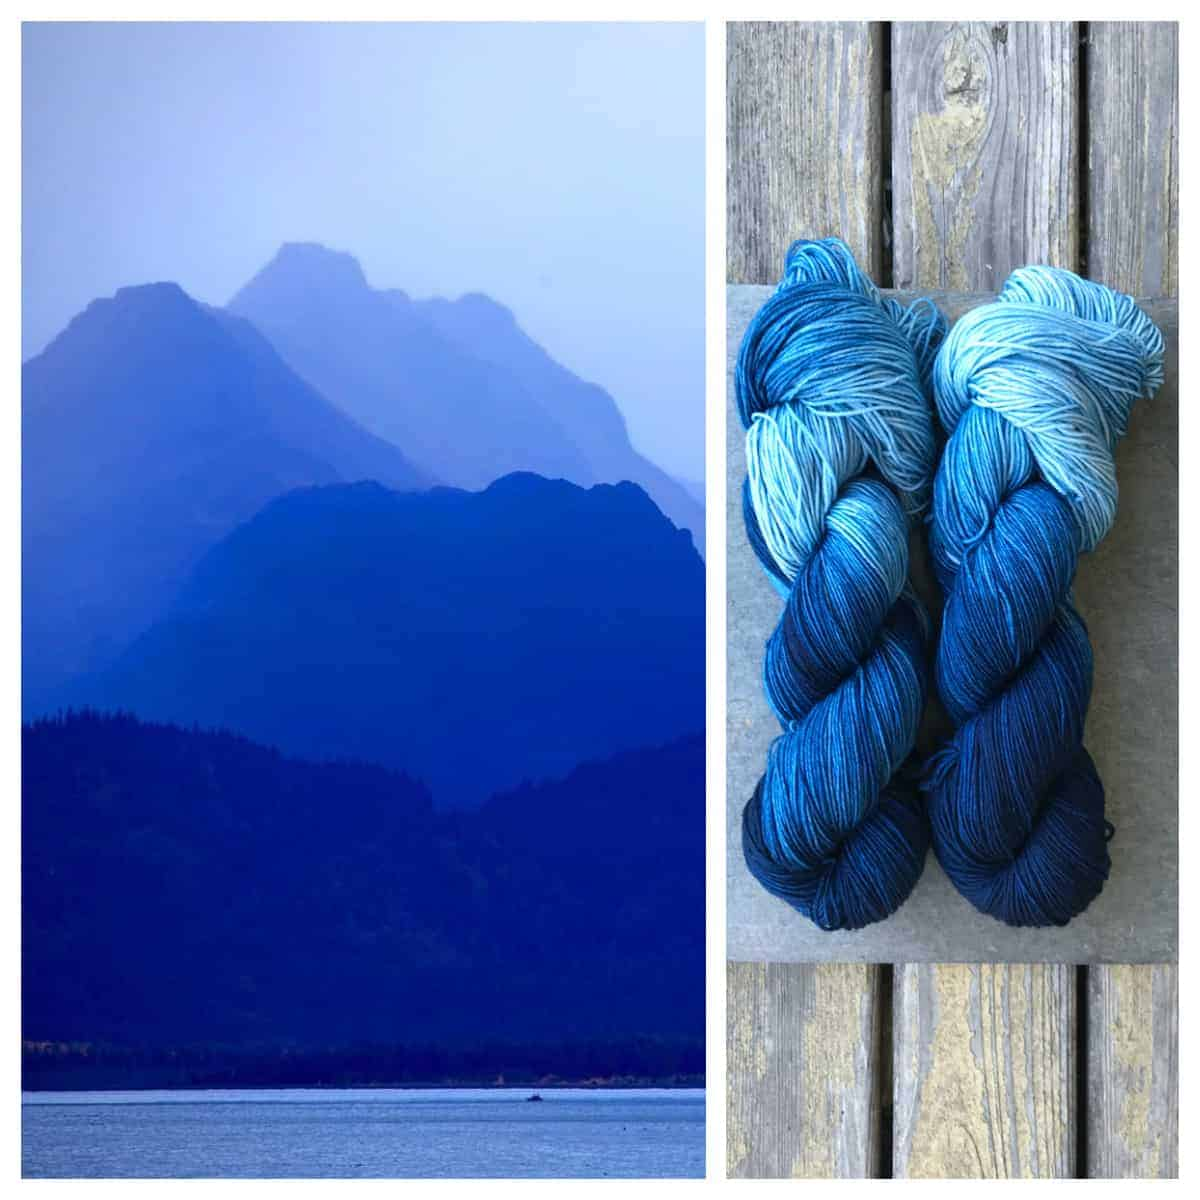 Mountains in shades of blue and two skeins of dark to light blue hand-dyed yarn.